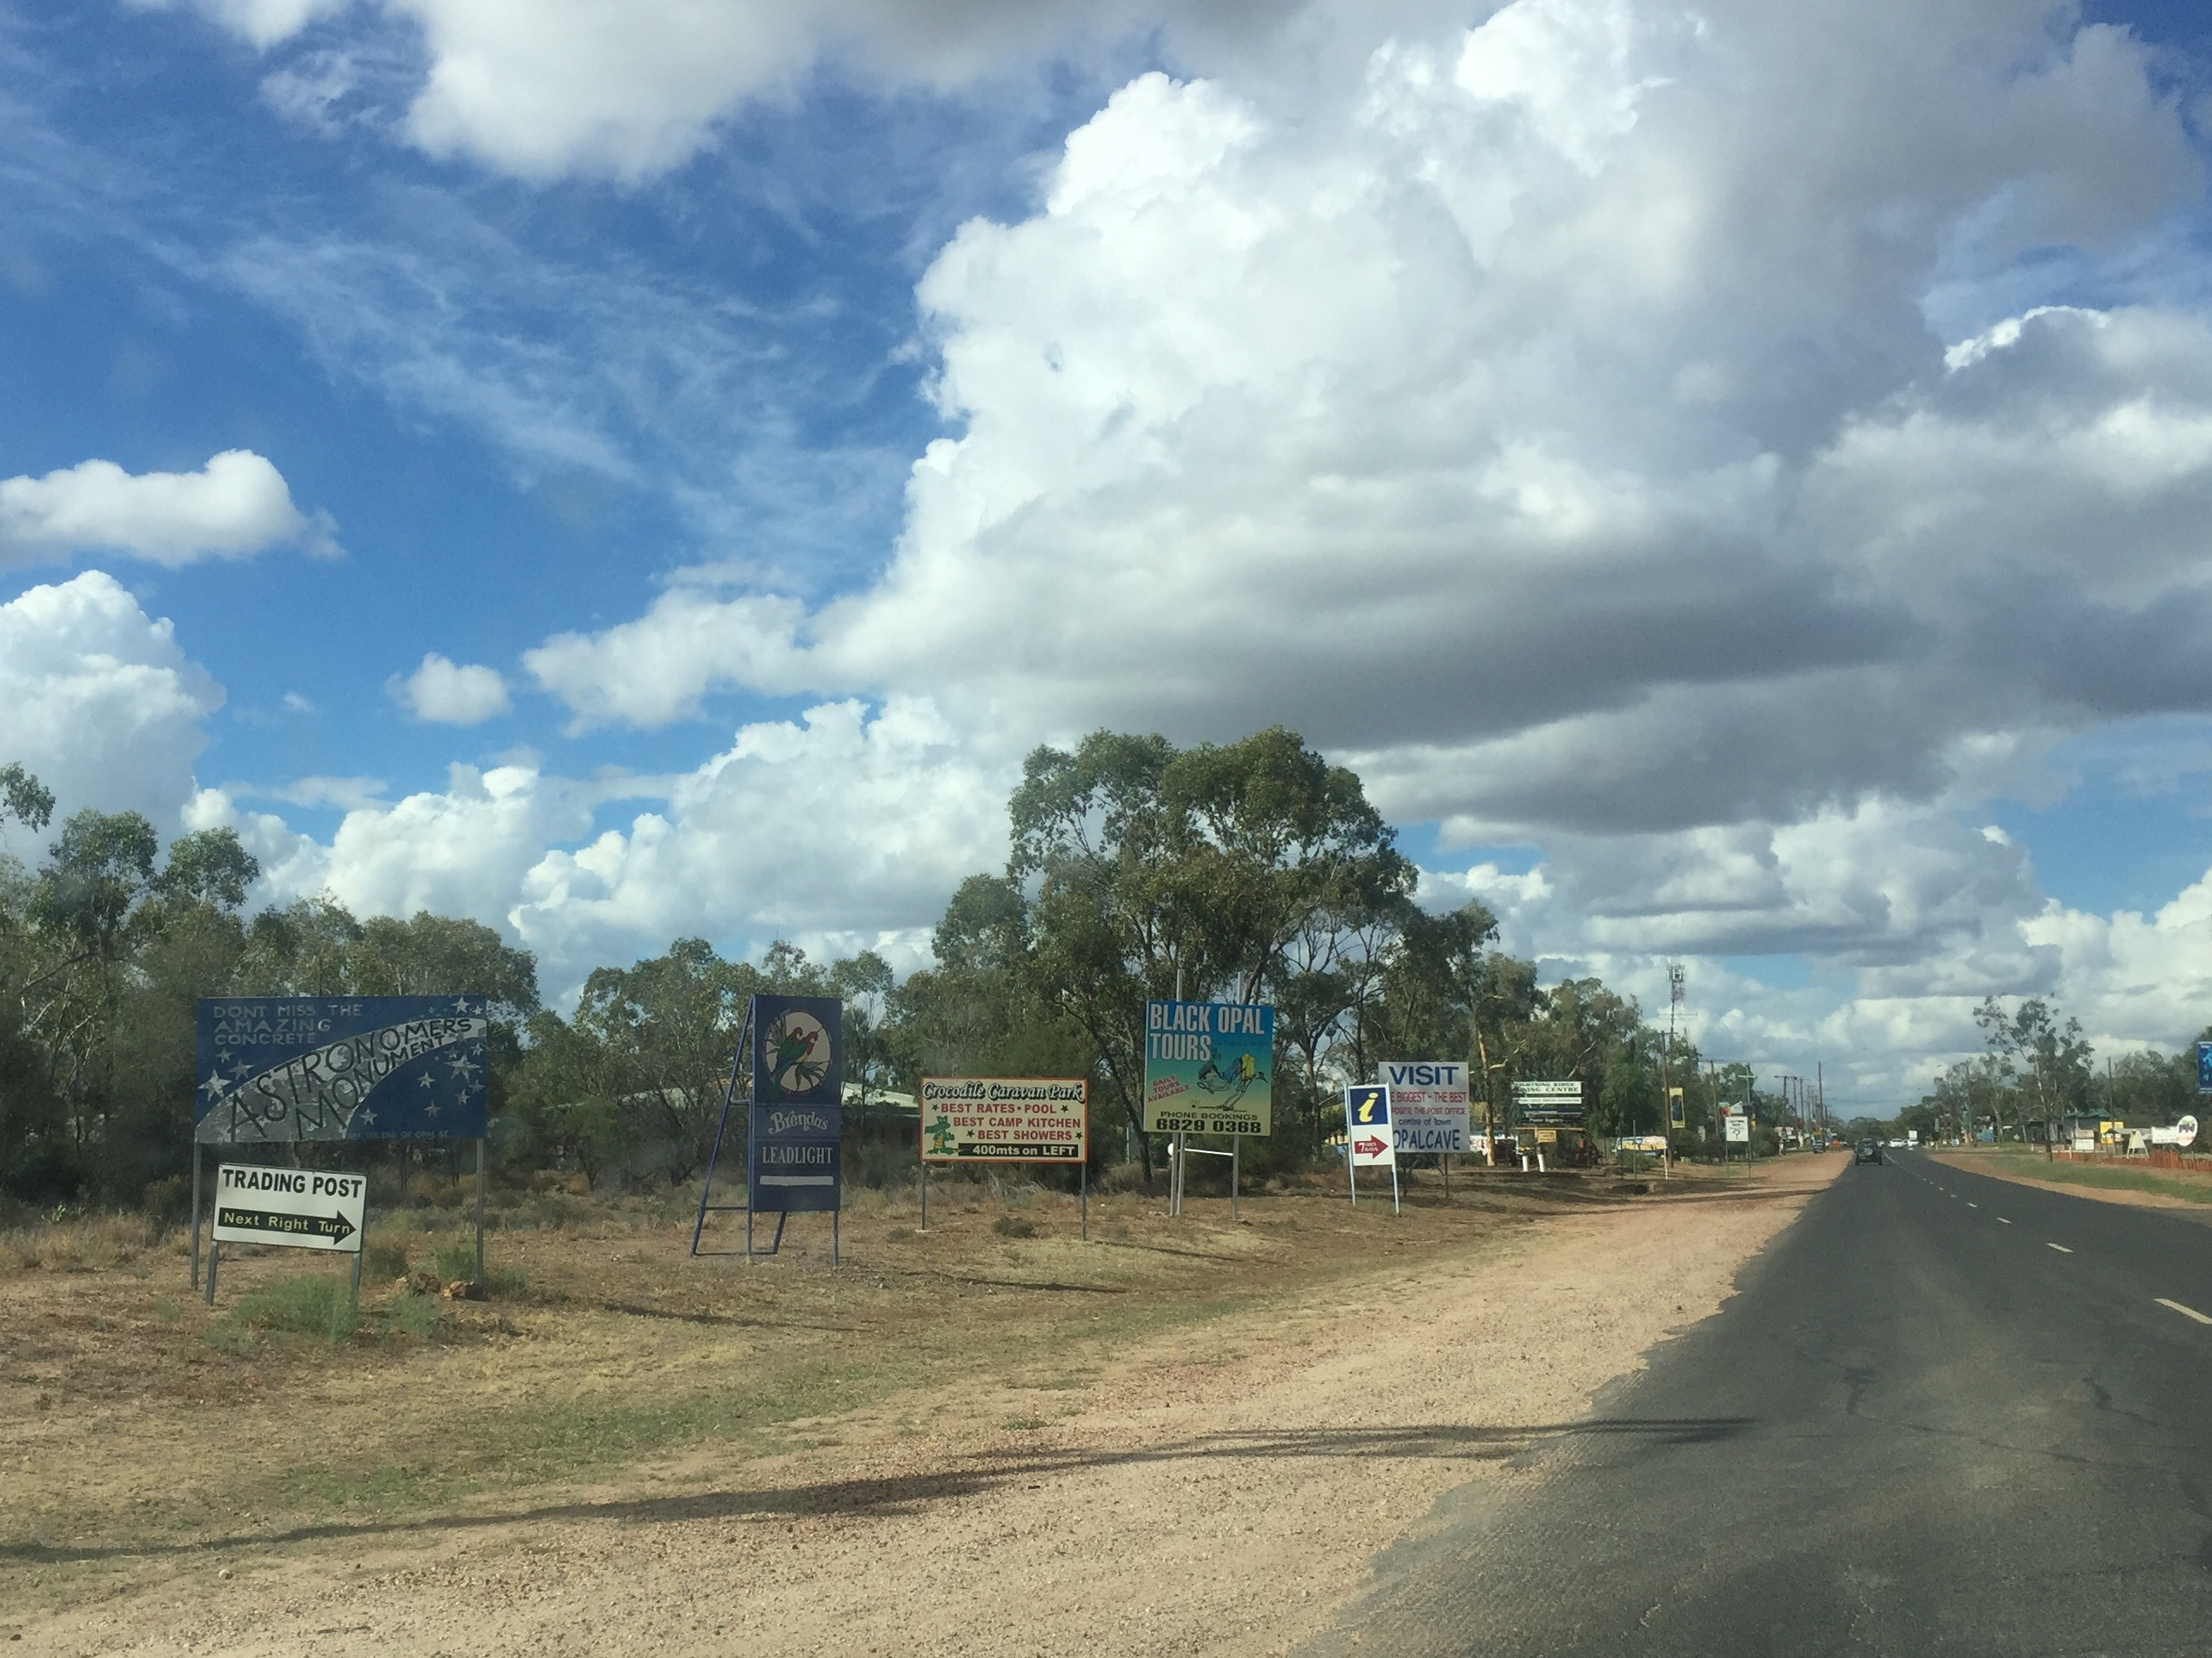 March 23-25: Lightning Ridge, by Mick – routinedetour.com